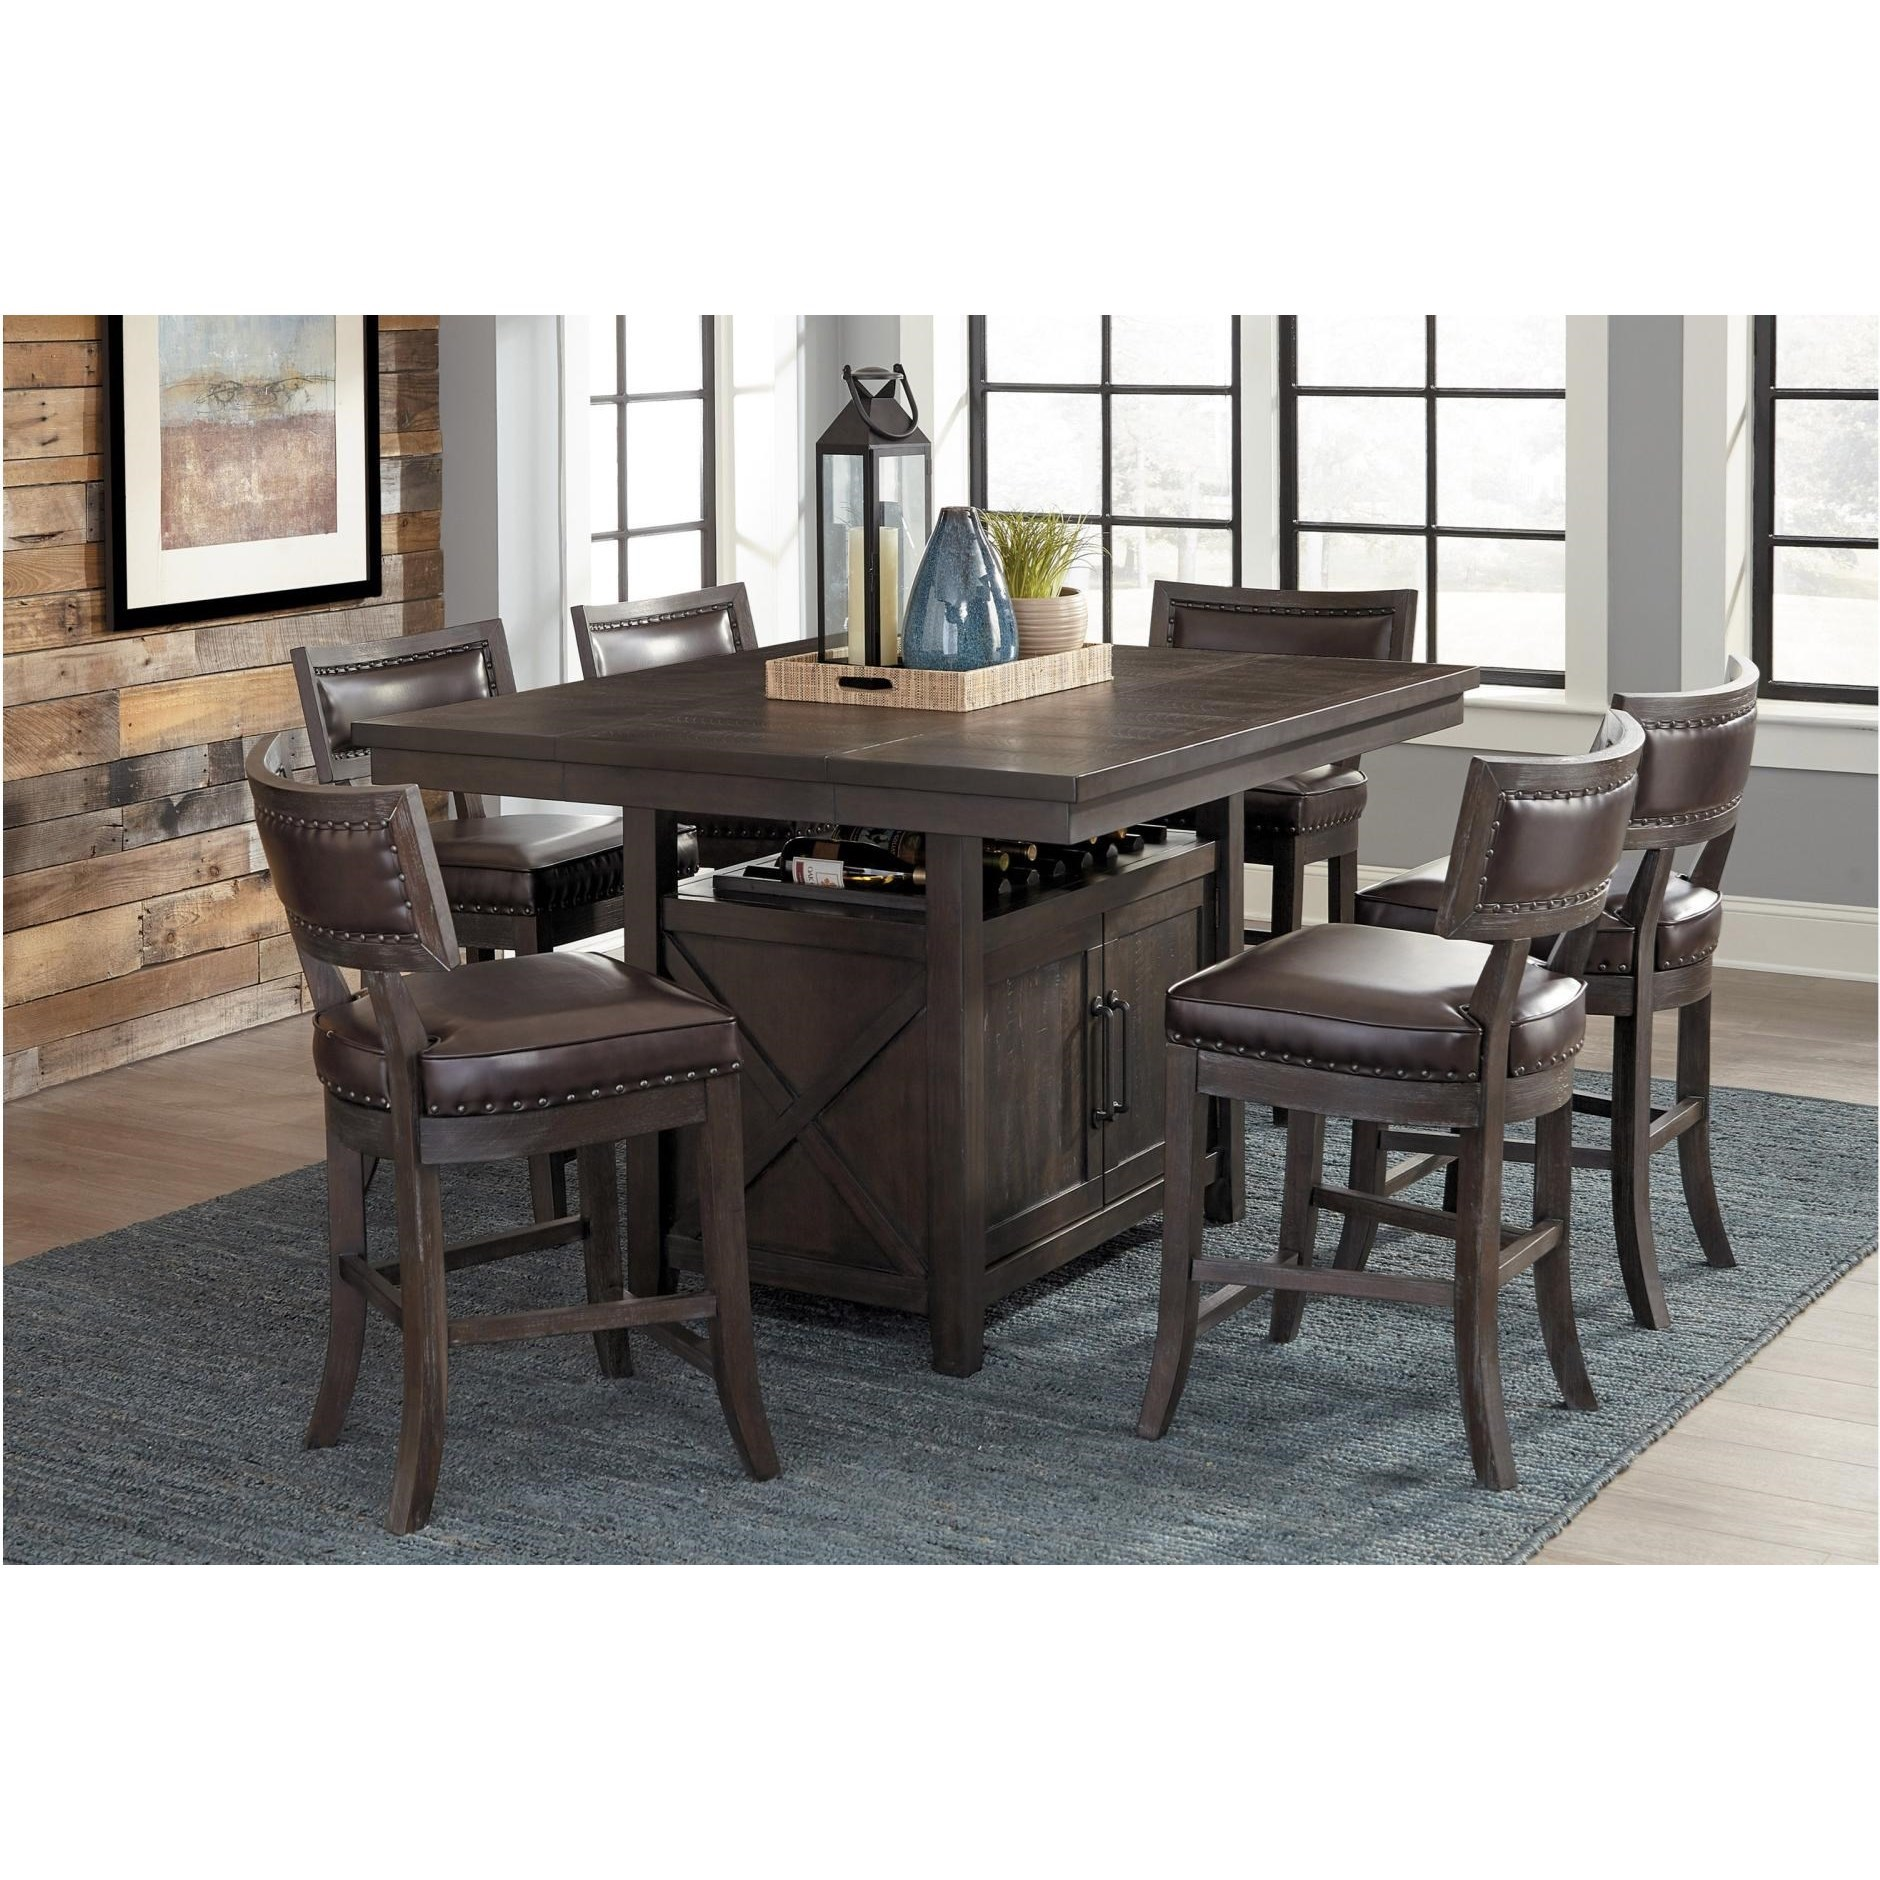 Oxton Counter Height Table Set by Homelegance at Simply Home by Lindy's